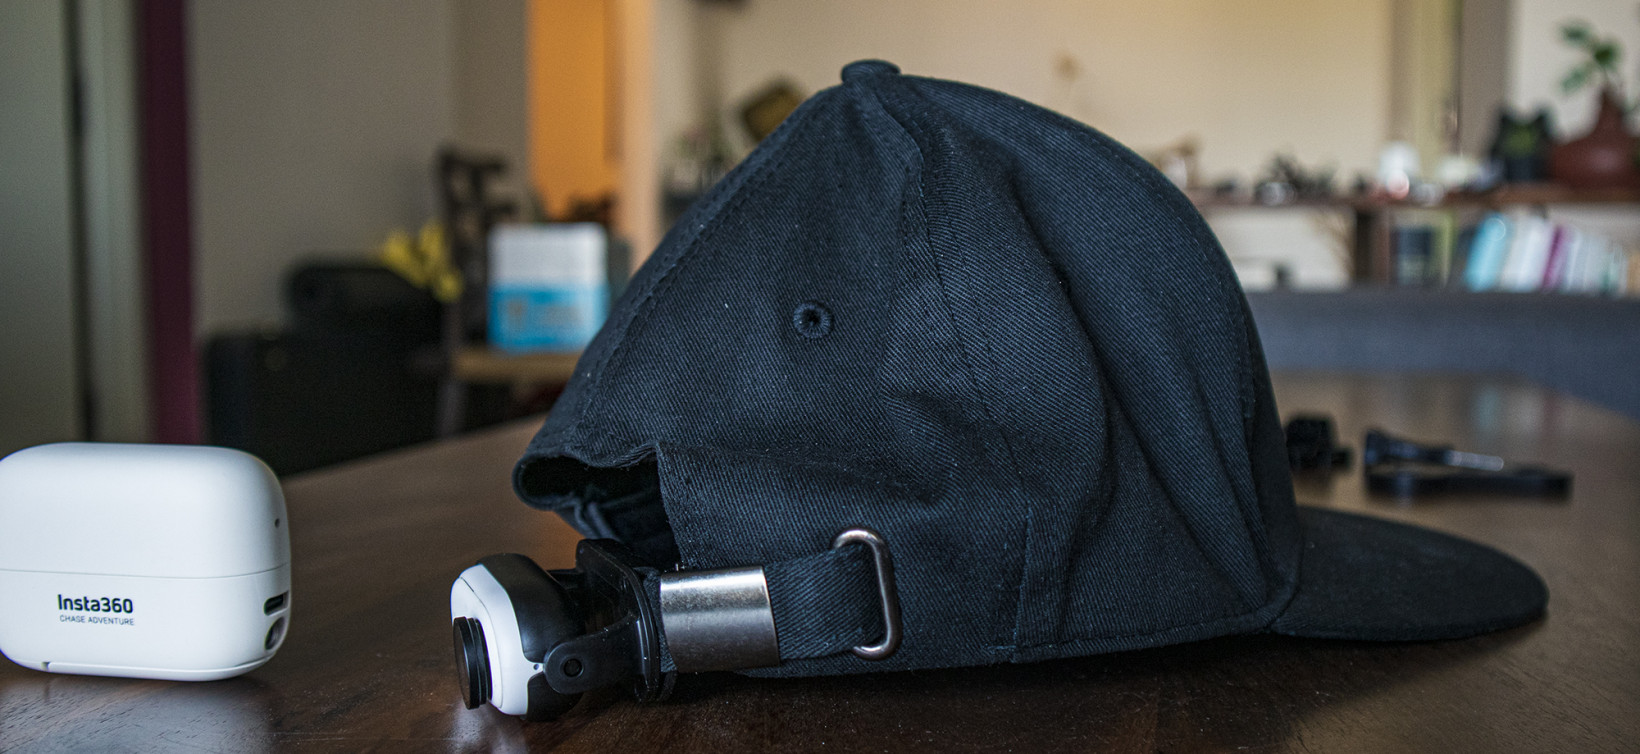 The Go 2 can even fit on a baseball cap with a ratcheted mount